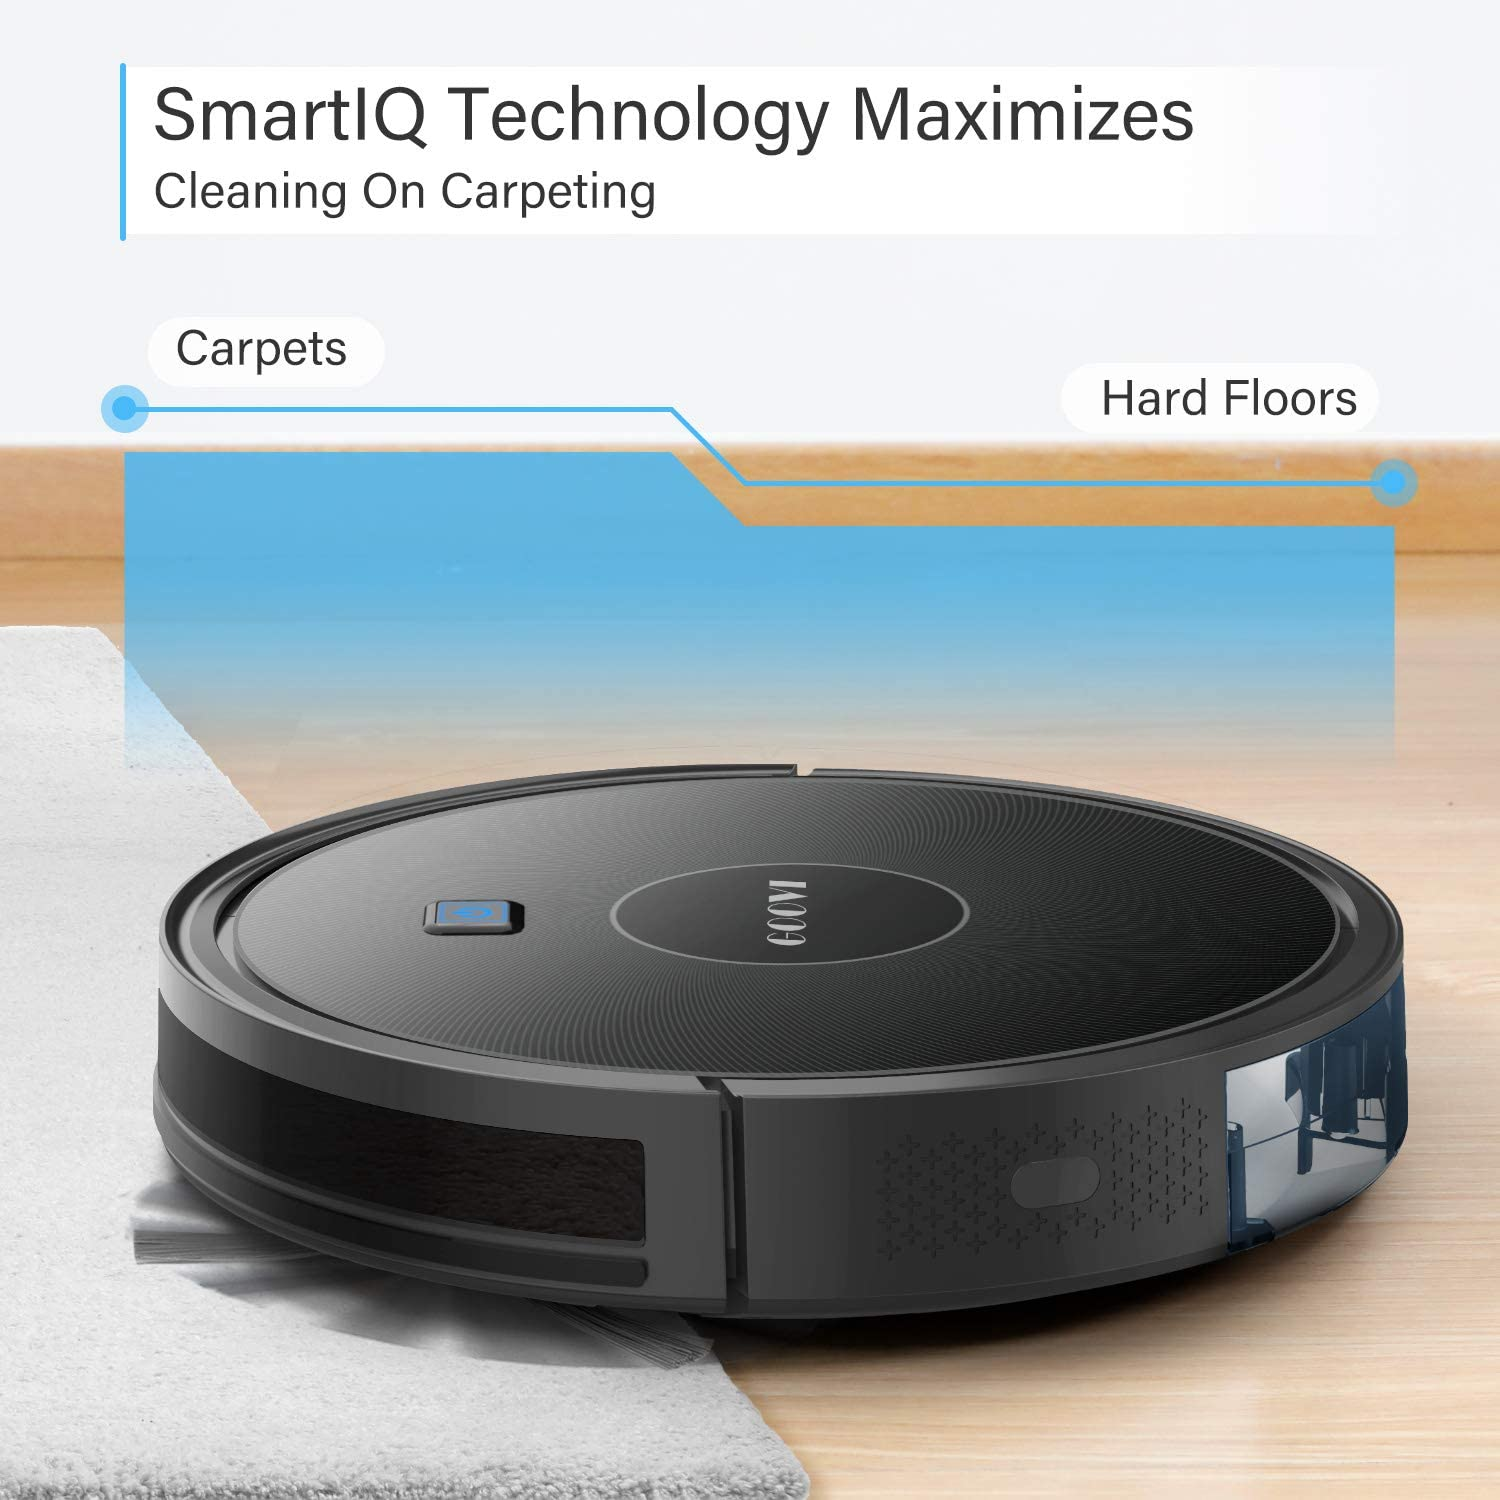 Household Gadgets: Daily Deals On Tech Every Home Needs - Robot Vacuum Cleaner